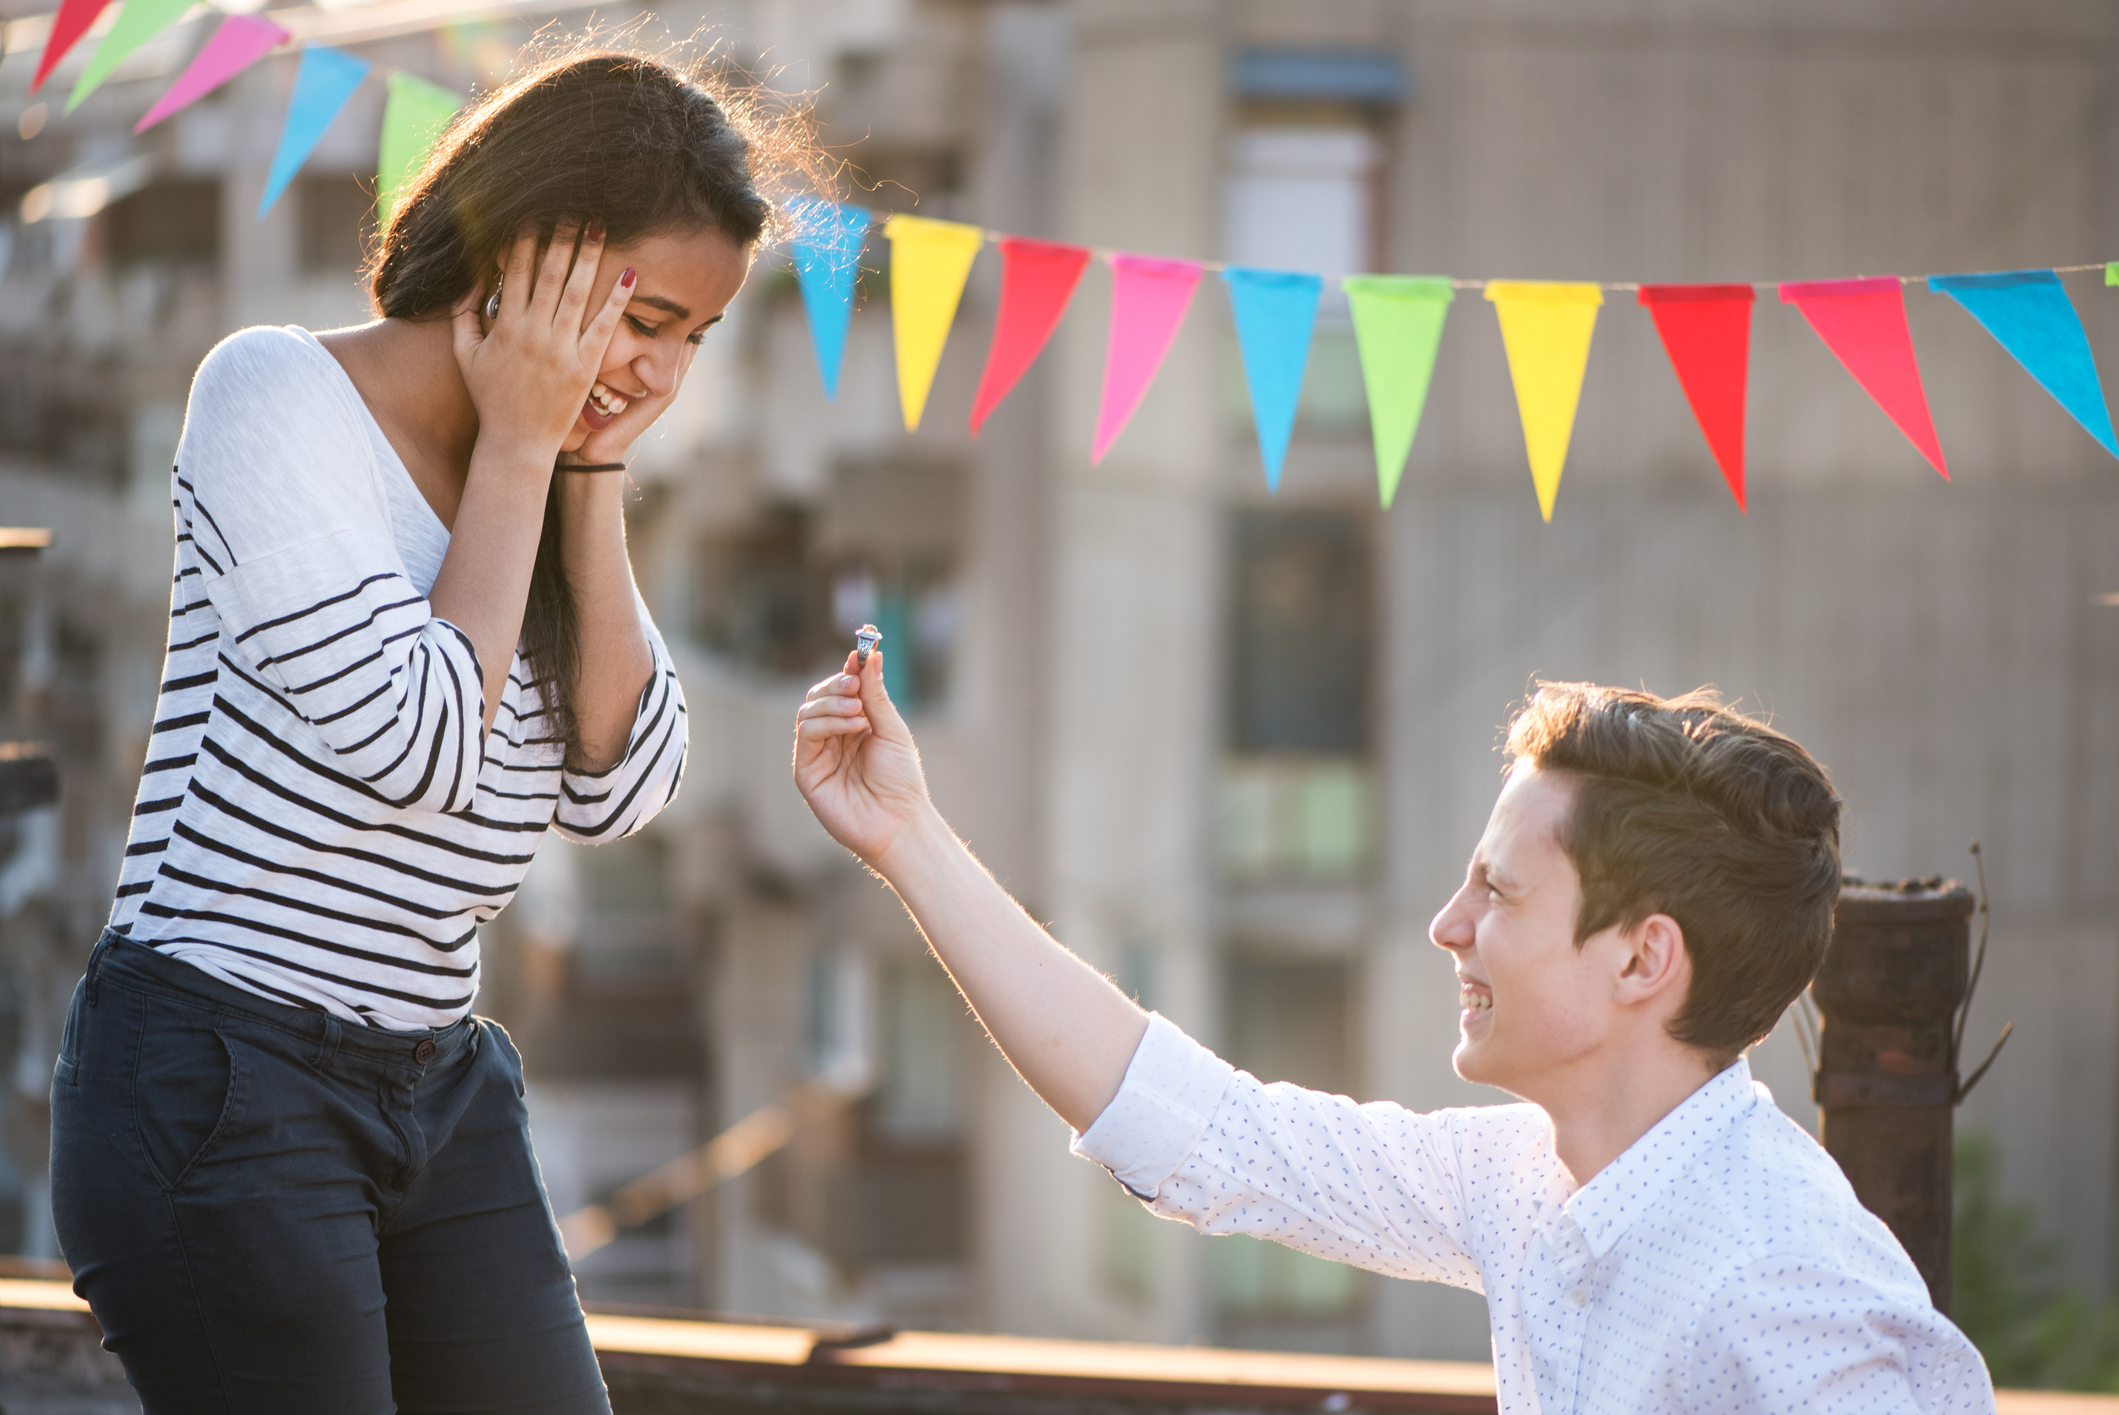 Millennials are using avocados to propose in this really adorable way